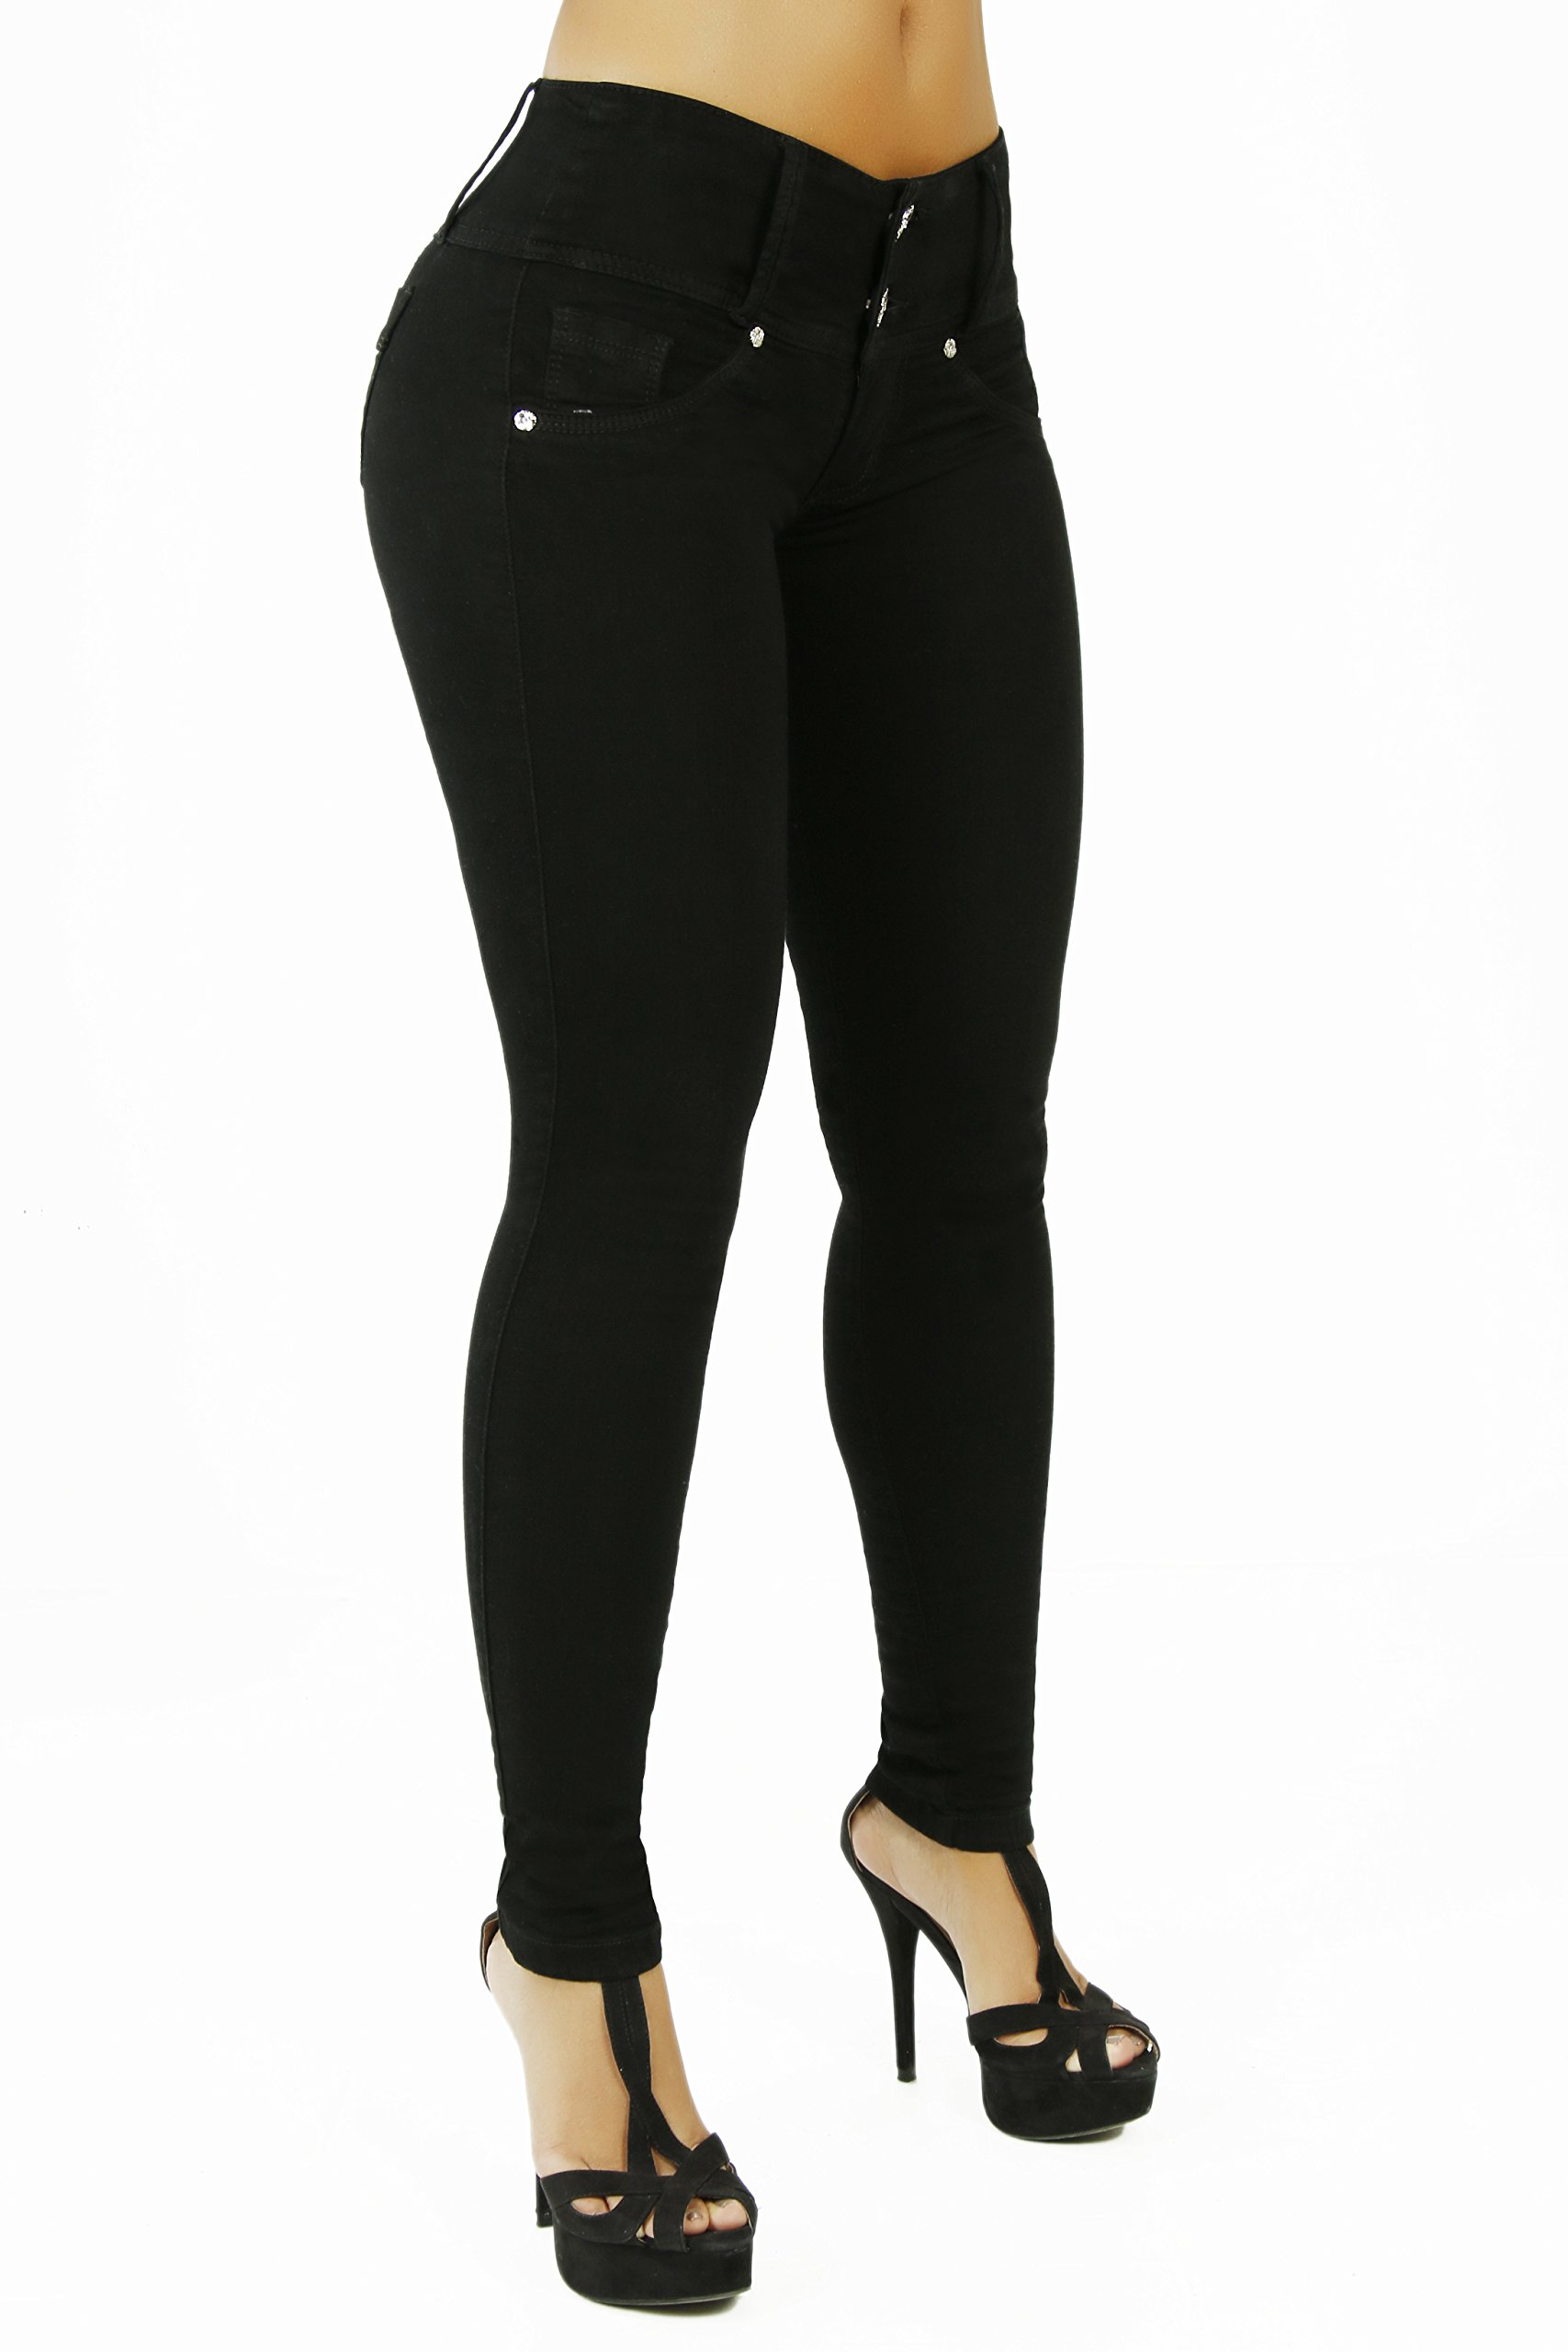 Curvify High Waisted Butt Lifting Slimming Jeans for Women - Skinny Stretch Jean 766(766, Black, 7) by Curvify (Image #3)